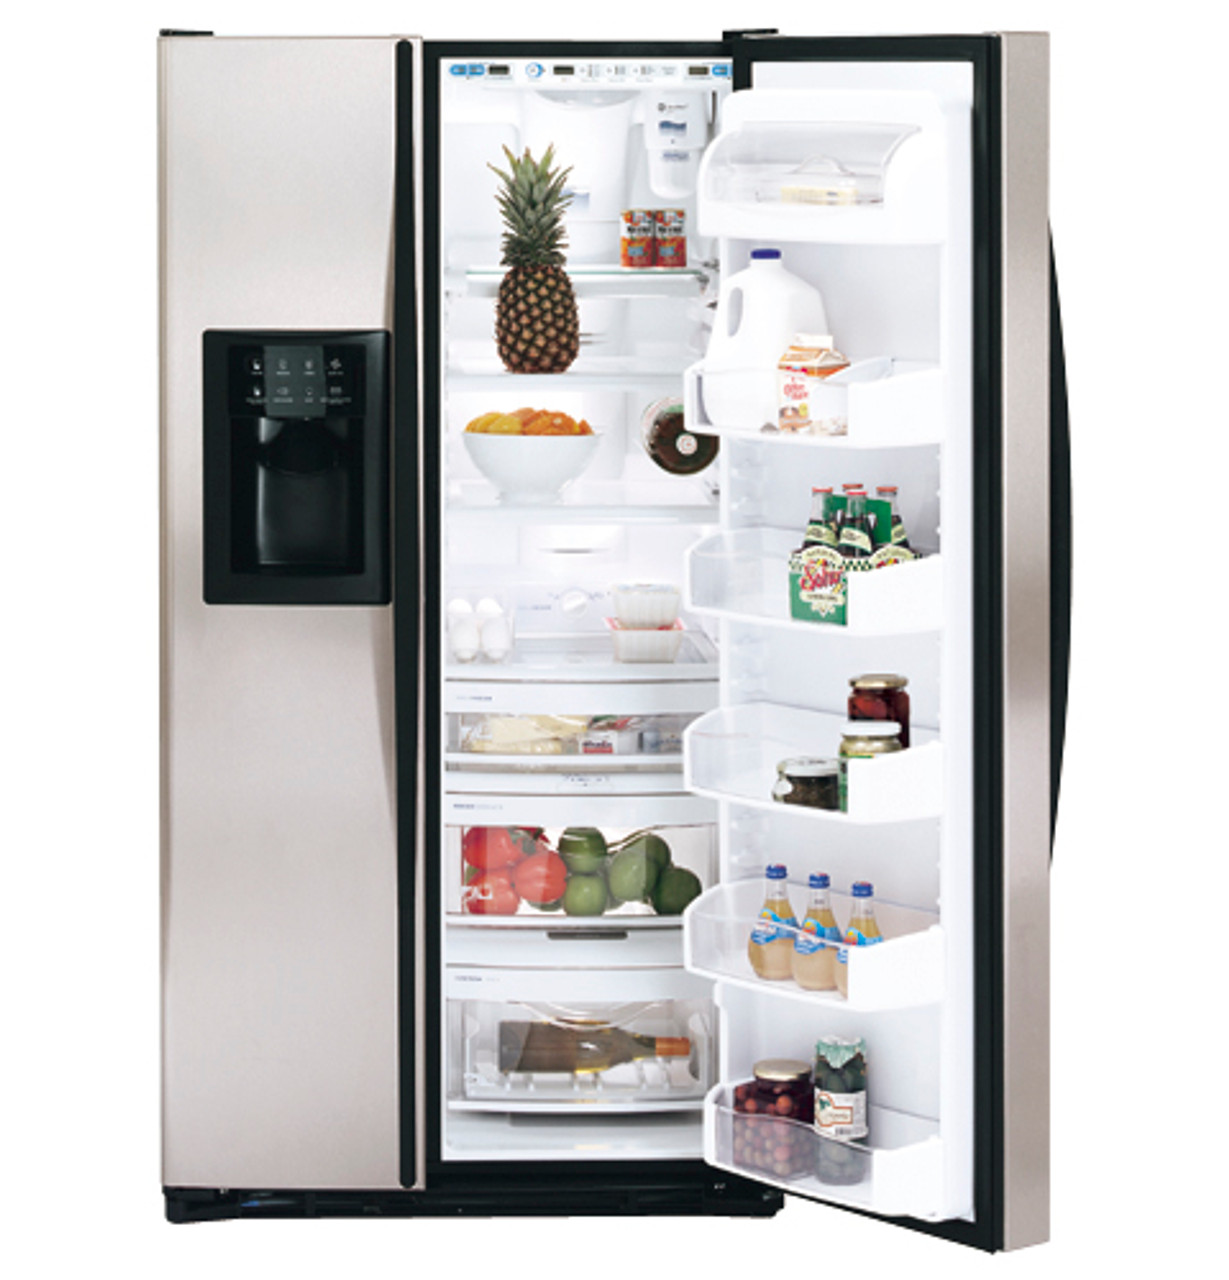 GE Profile Arctica™ 26.6 Cu. Ft. Stainless Side-By-Side Refrigerator -  PSS27SGNBS - GE Appliances | Ge Profile Arctica Wiring Diagram |  | GE Appliances